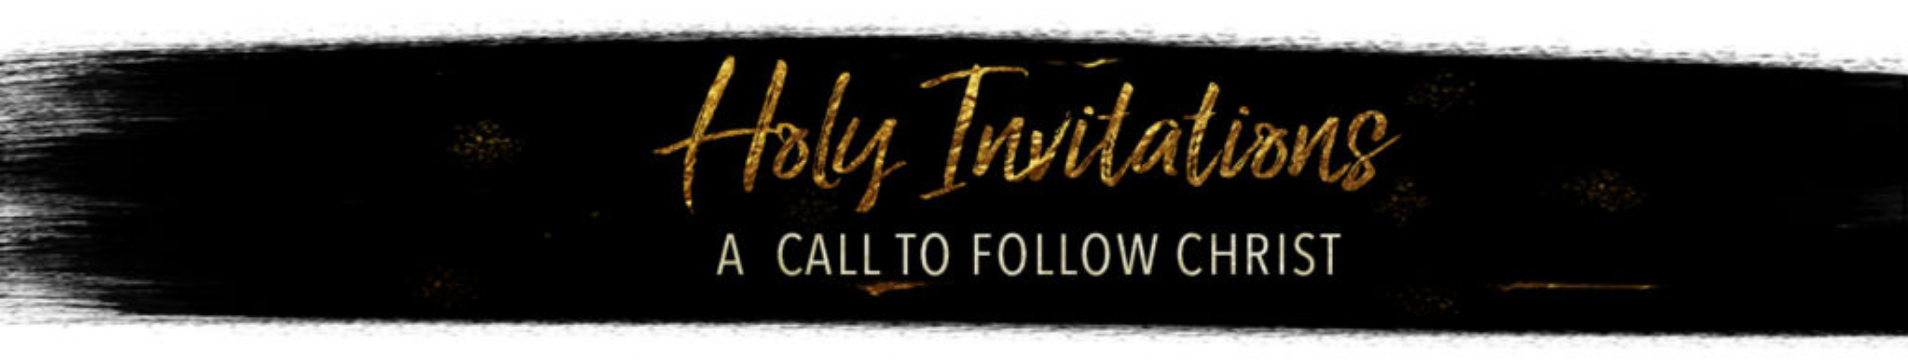 holyinvitations.png